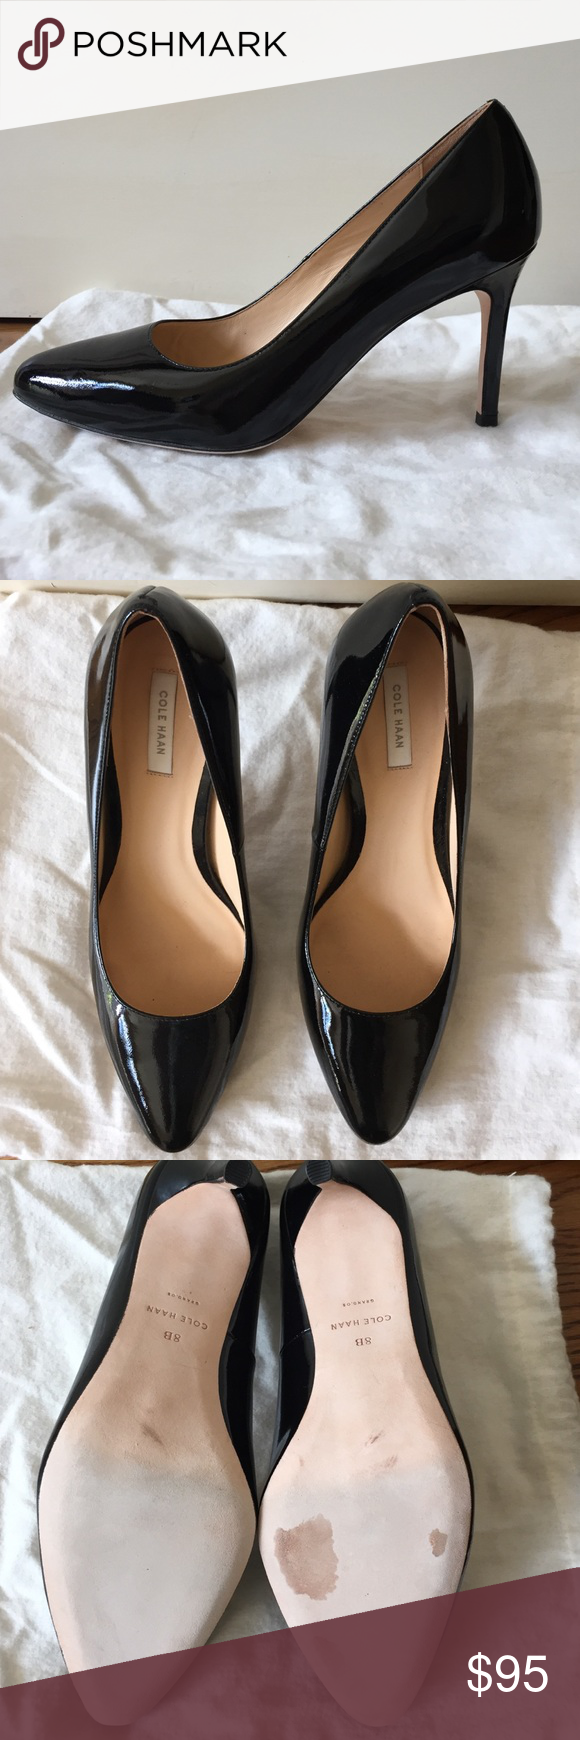 Cole Haan Bethany (85mm) Pumps This is the perfect pump for both work and regular life! I own four pairs of these in different colors, wore this pair once inside my office (never outdoors, only one day) before realizing is bought the wrong size. Cole Haan Shoes Heels